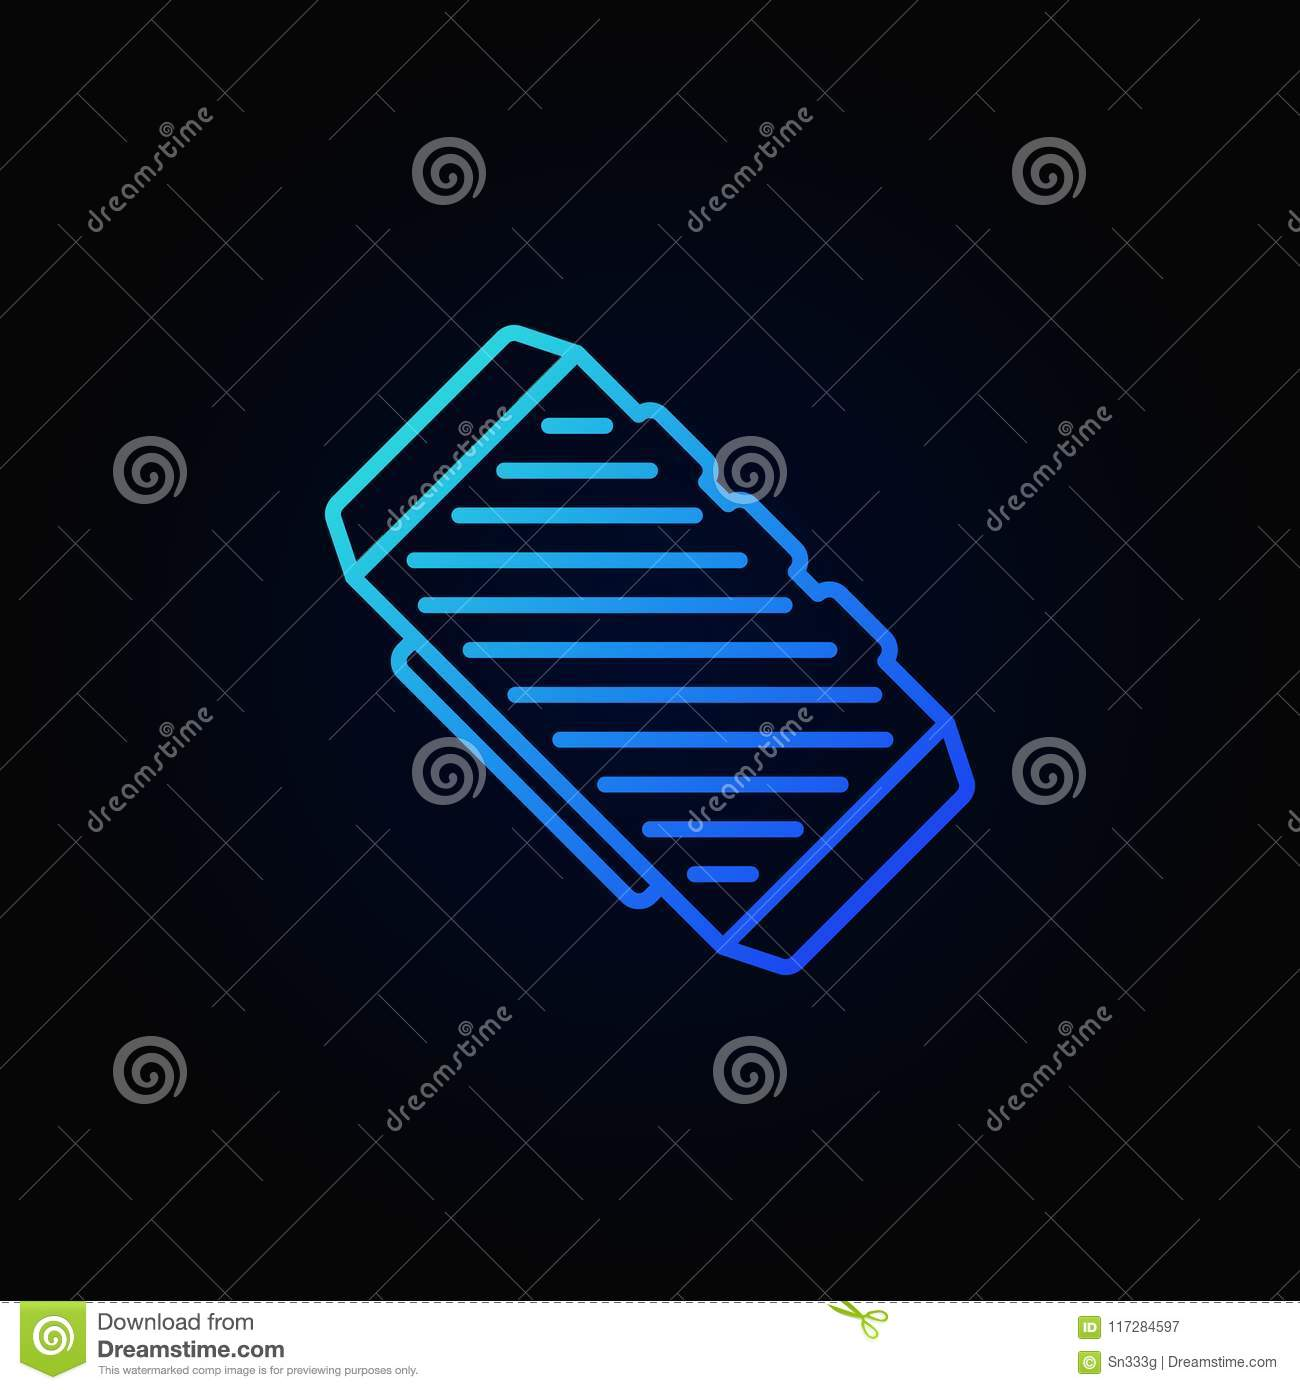 Bluetooth Speaker Blue Outline Concept Vector Icon Stock Vector